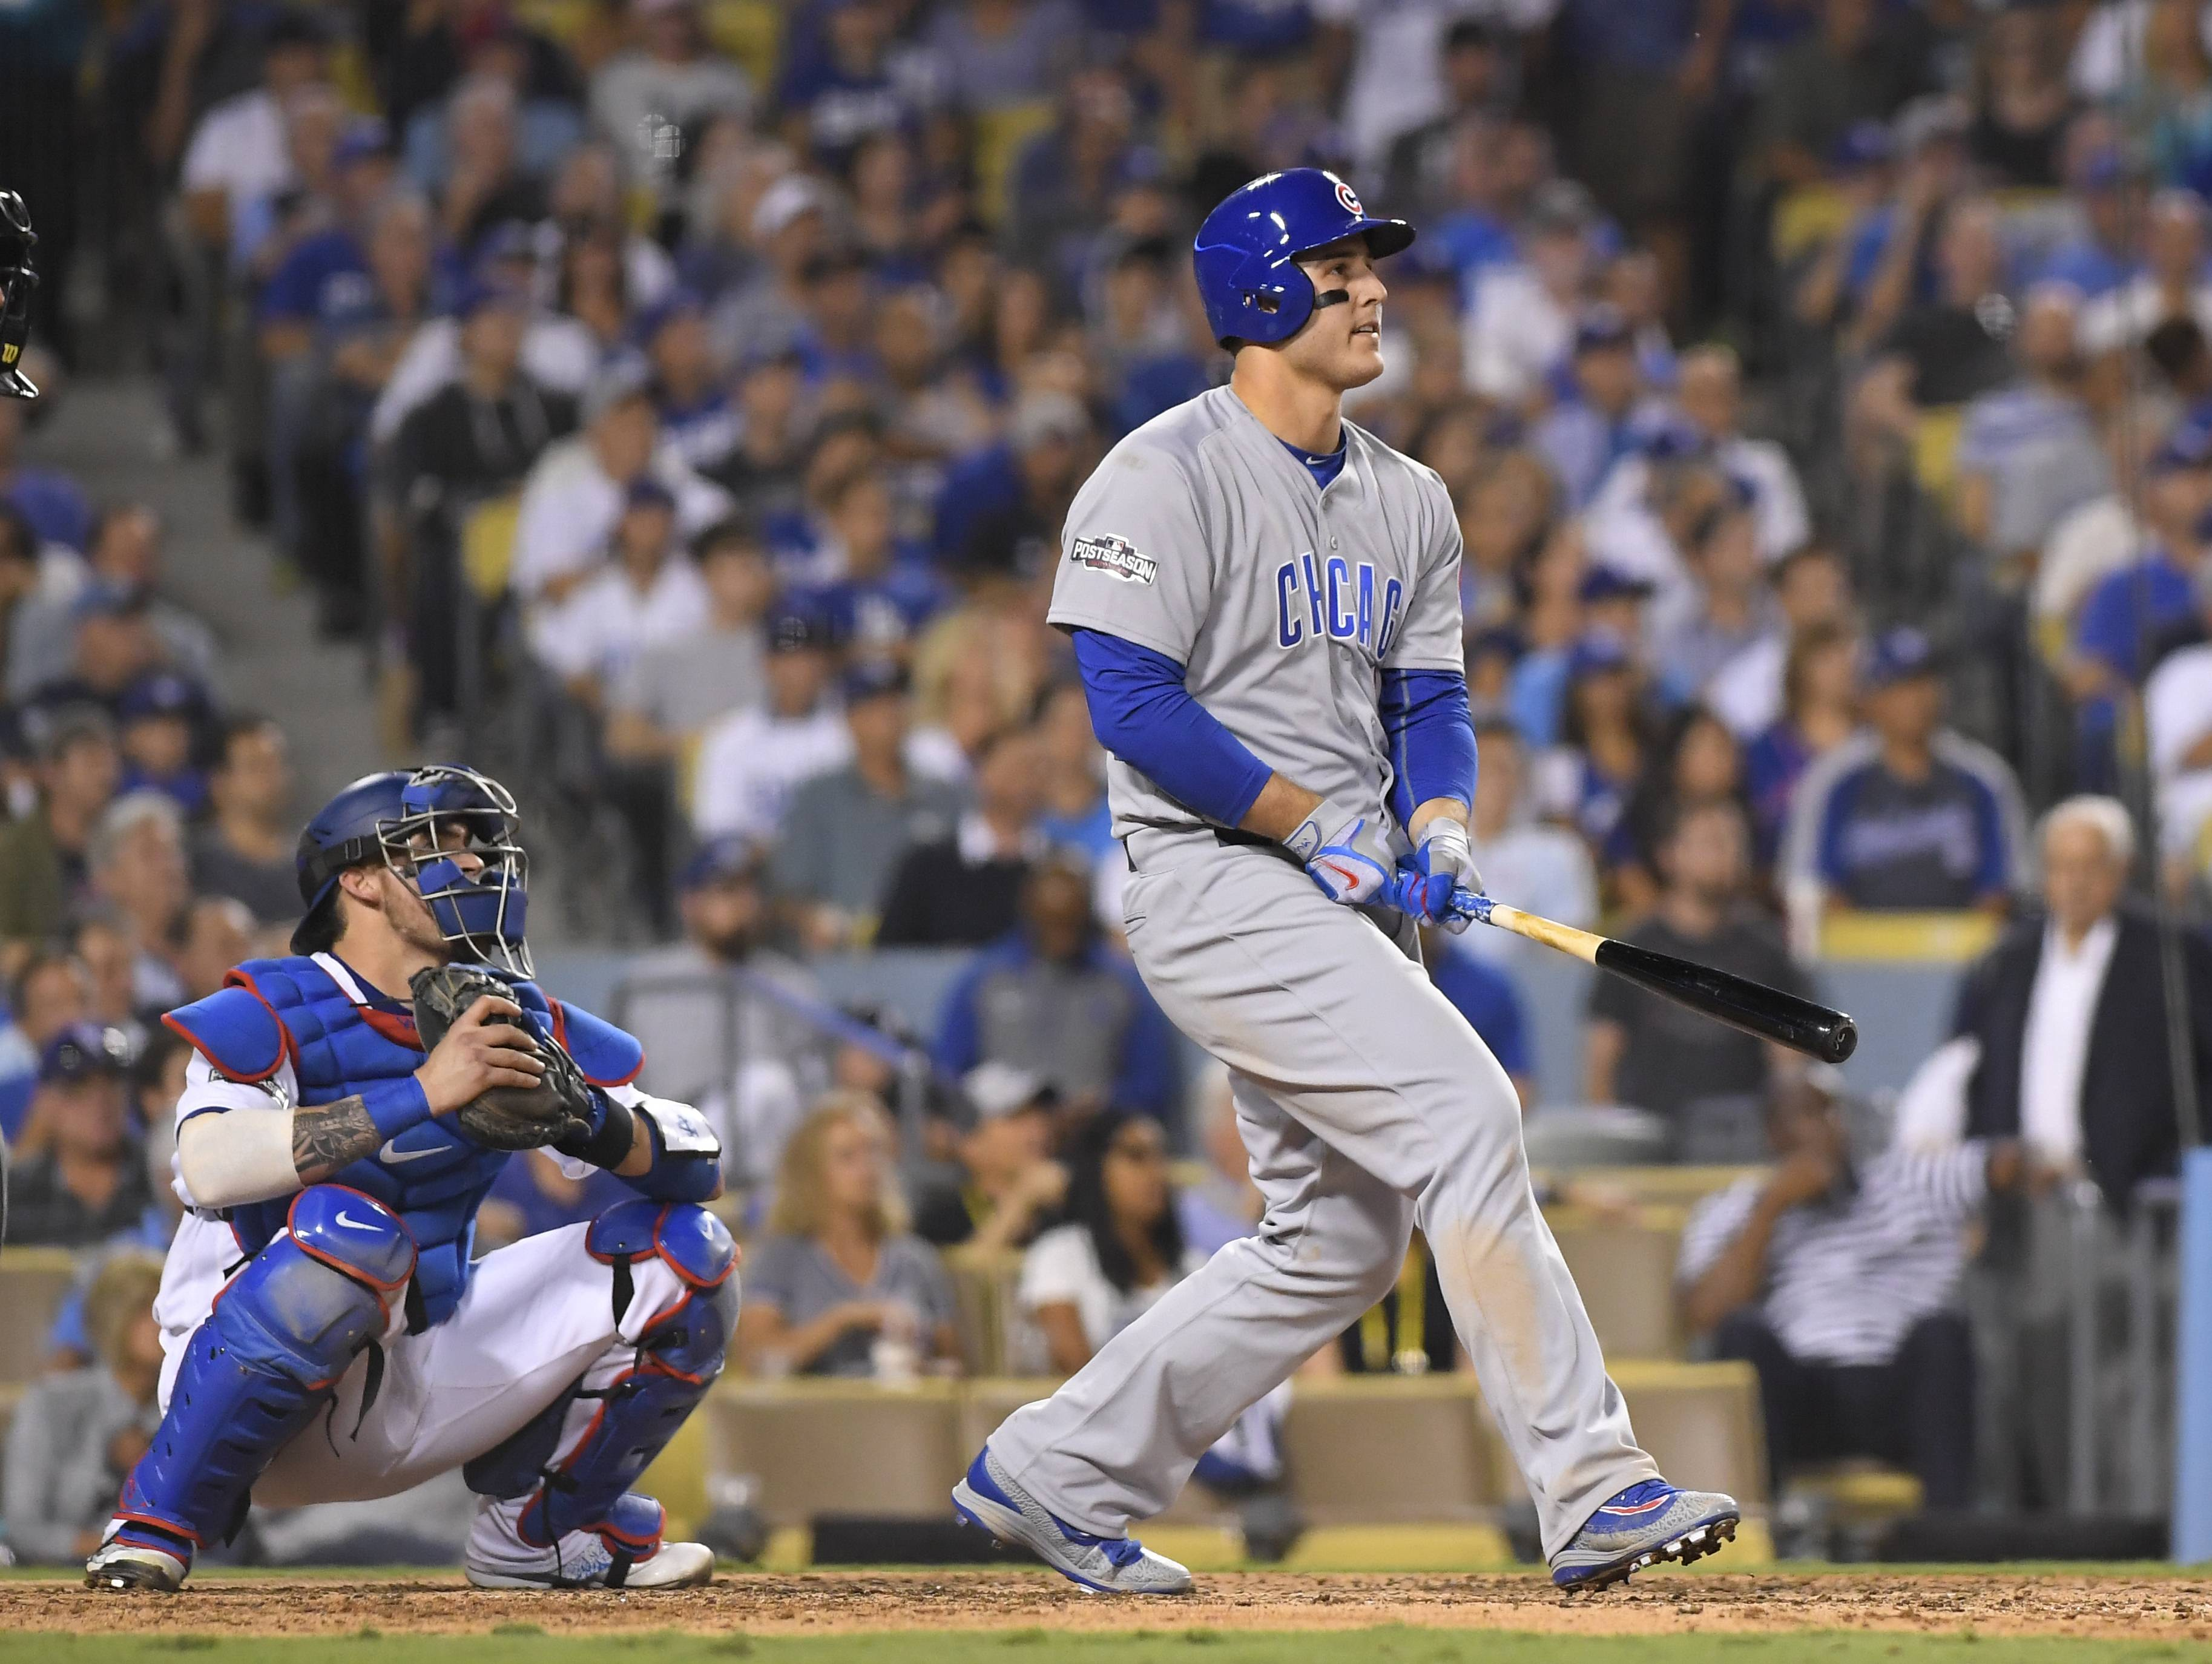 The Chicago Cubs' Anthony Rizzo hits a home run during the fifth inning of Game 4 of the National League championship series against the Los Angeles Dodgers Wednesday in Los Angeles.